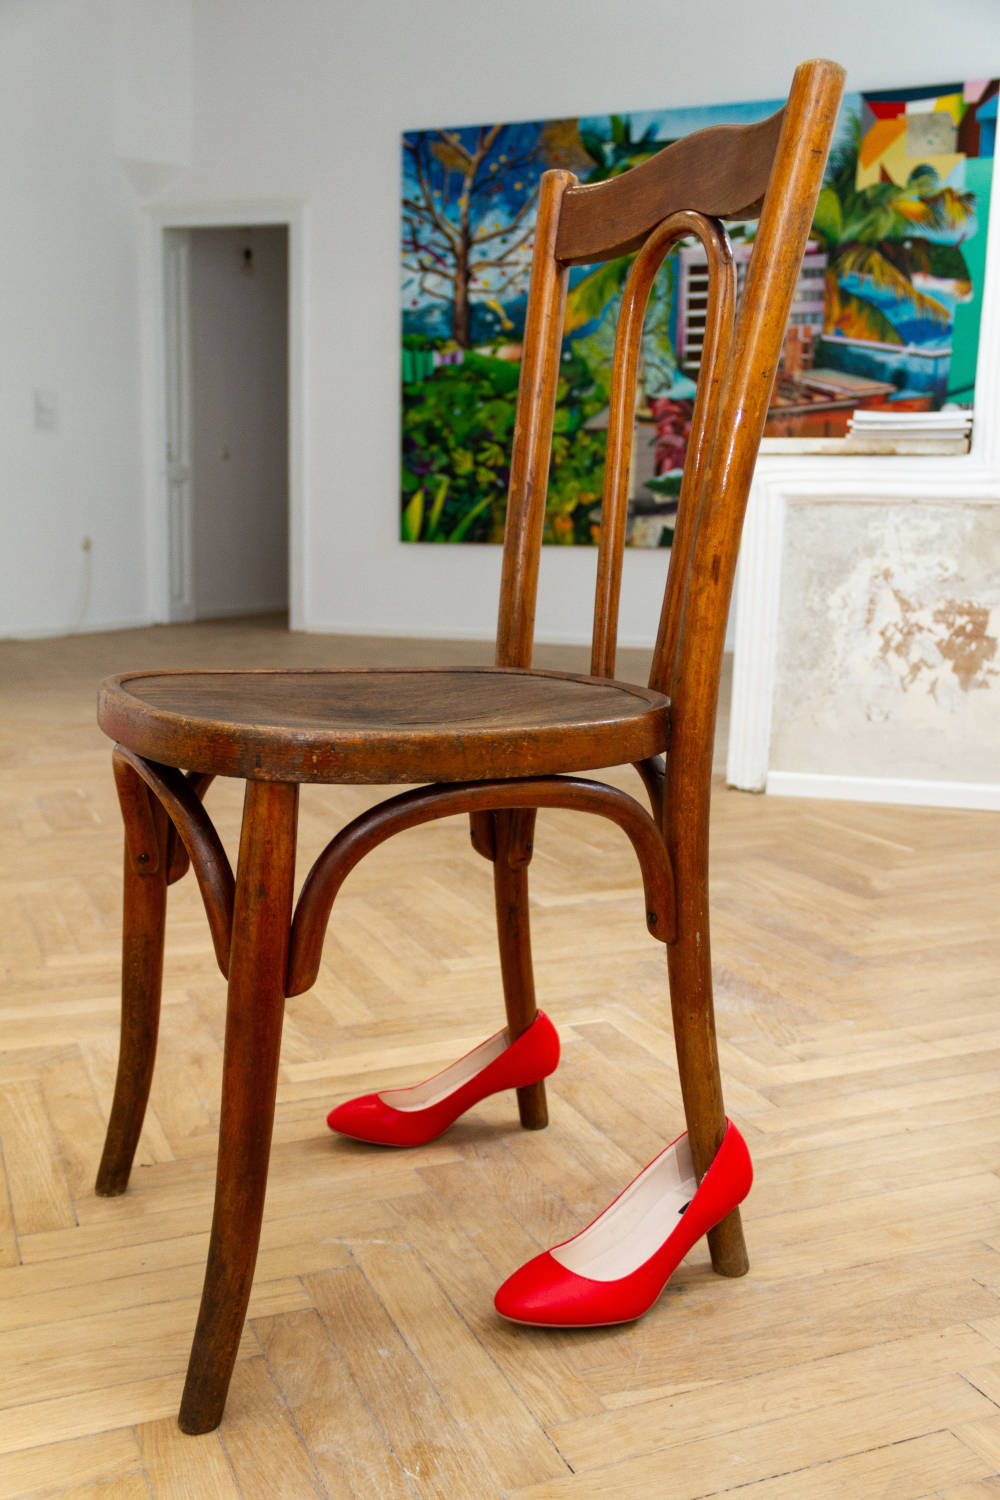 Adelina Ivan, Alter-Object, 2019. Object installation (wooden chair, red shoes)